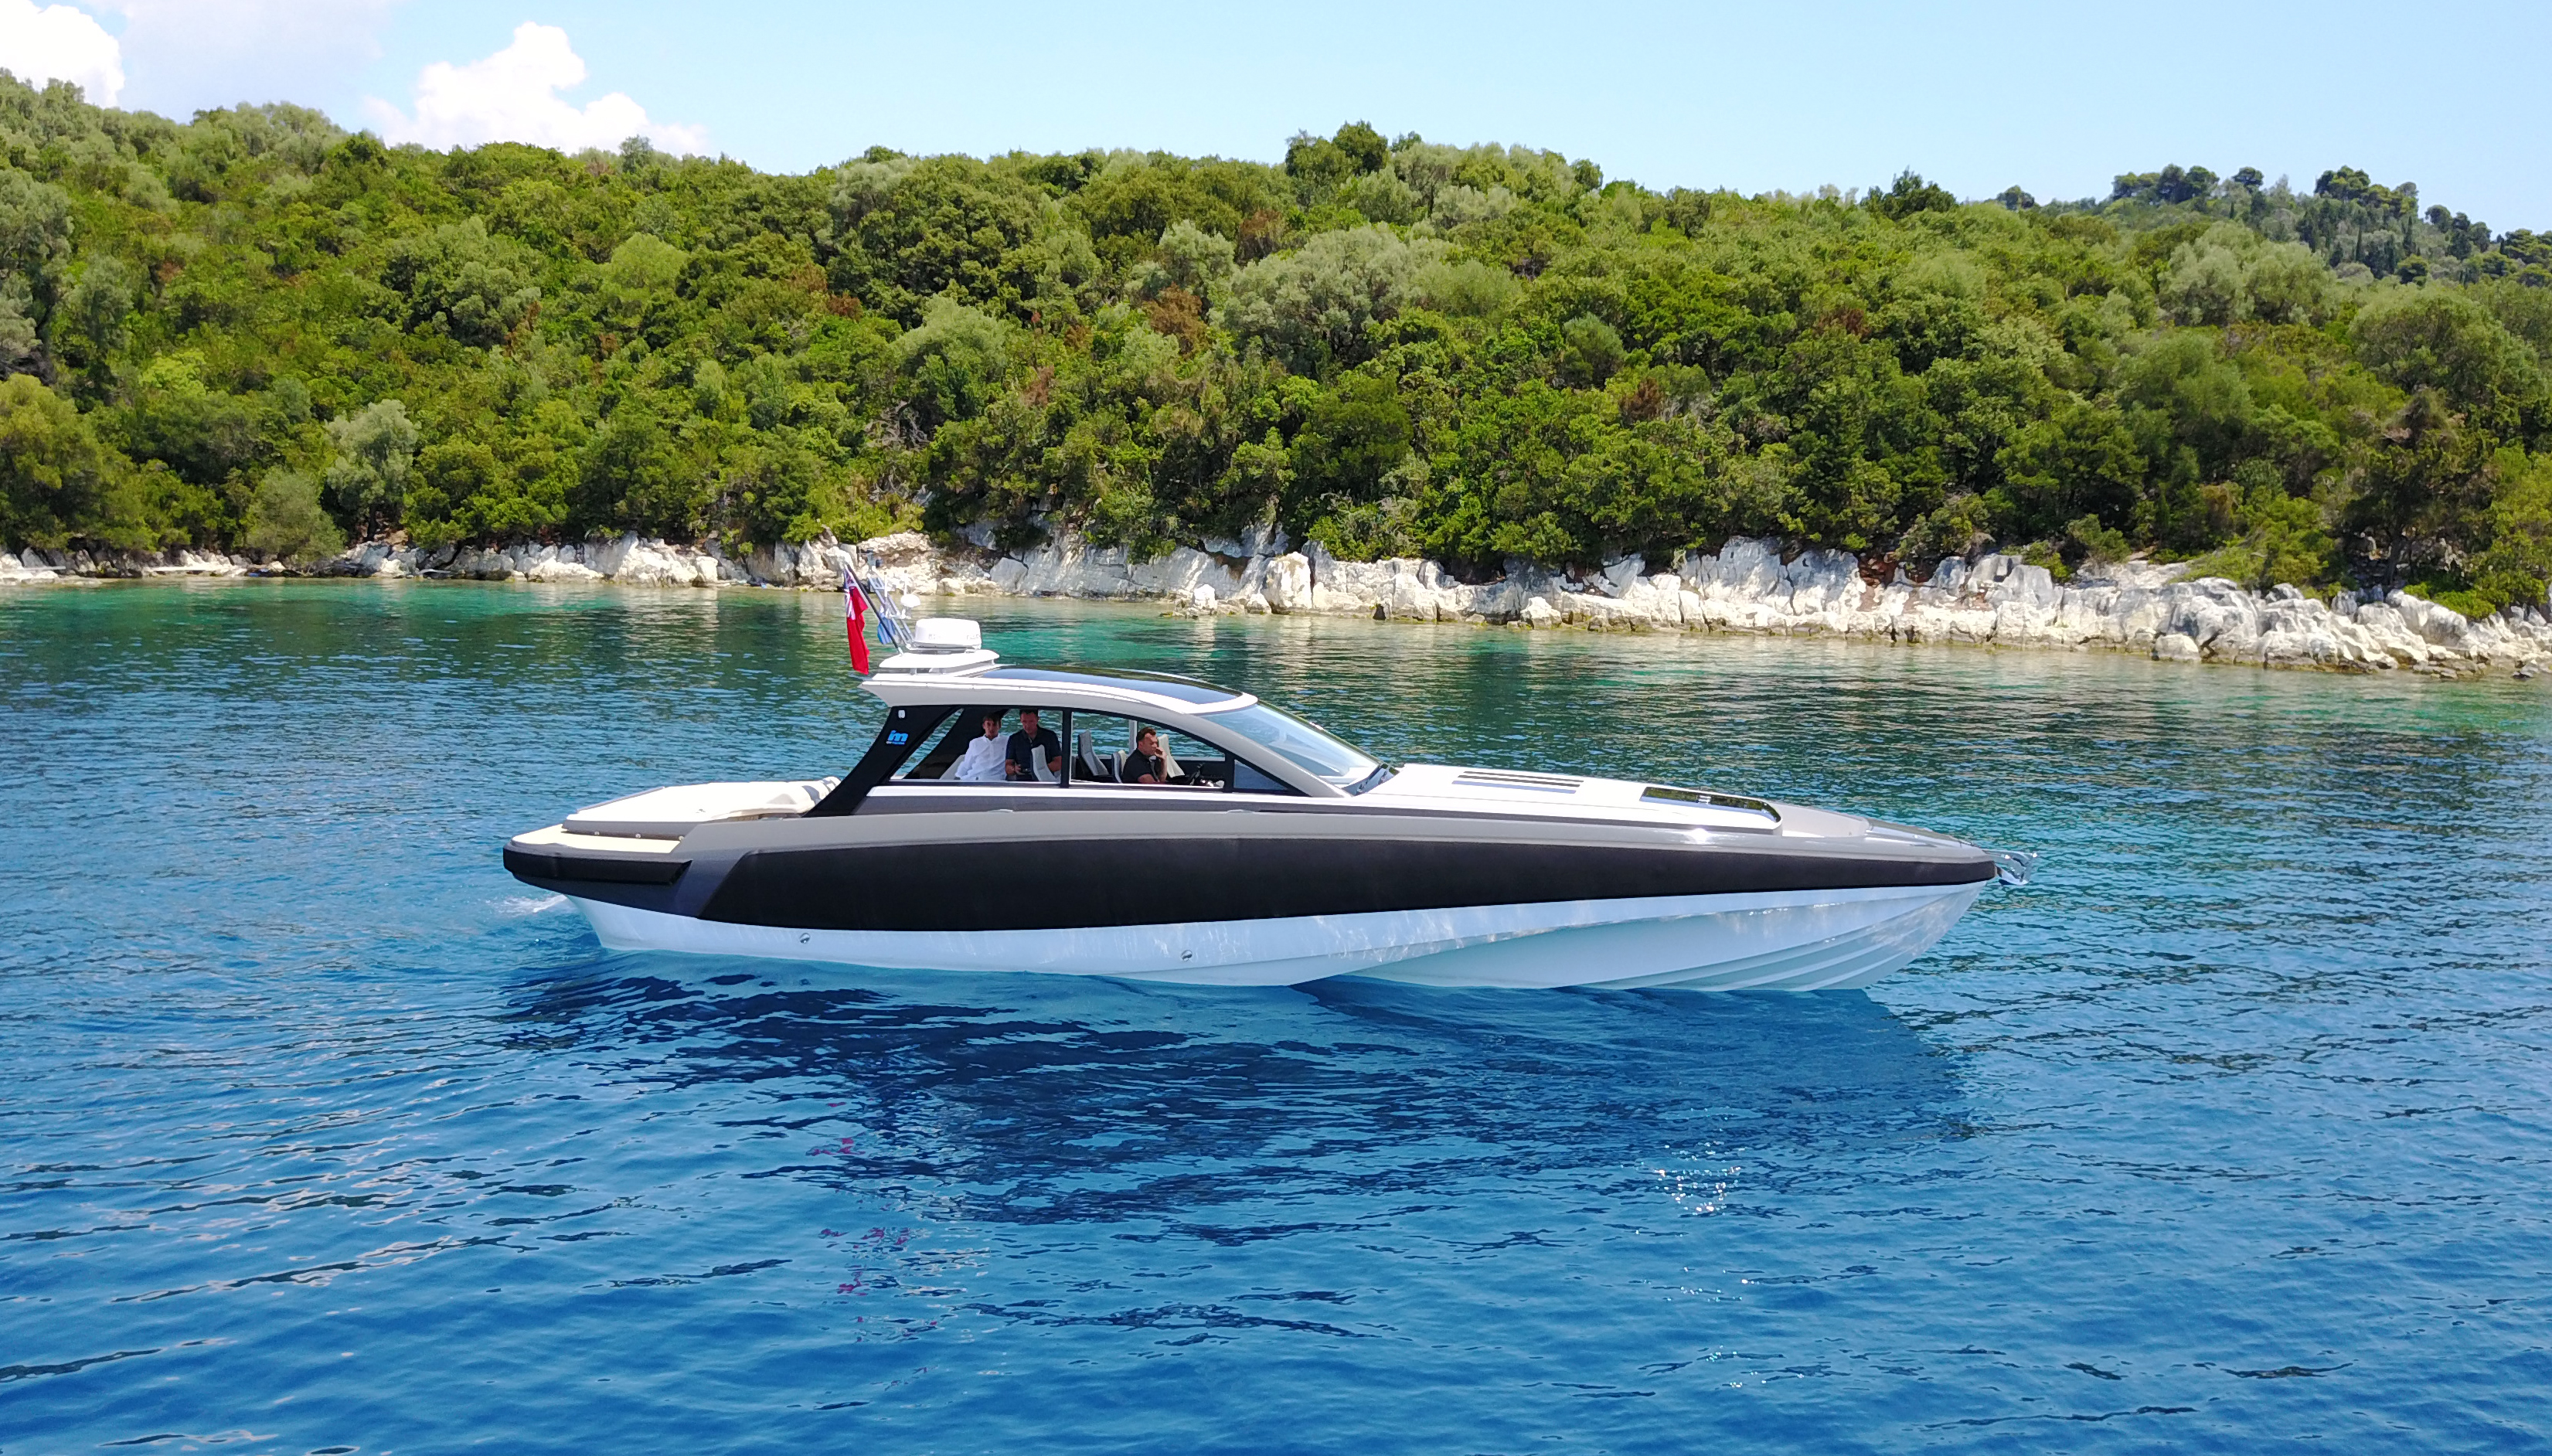 The new Brit Pack: Bladerunner 45 - Motor Boat & Yachting